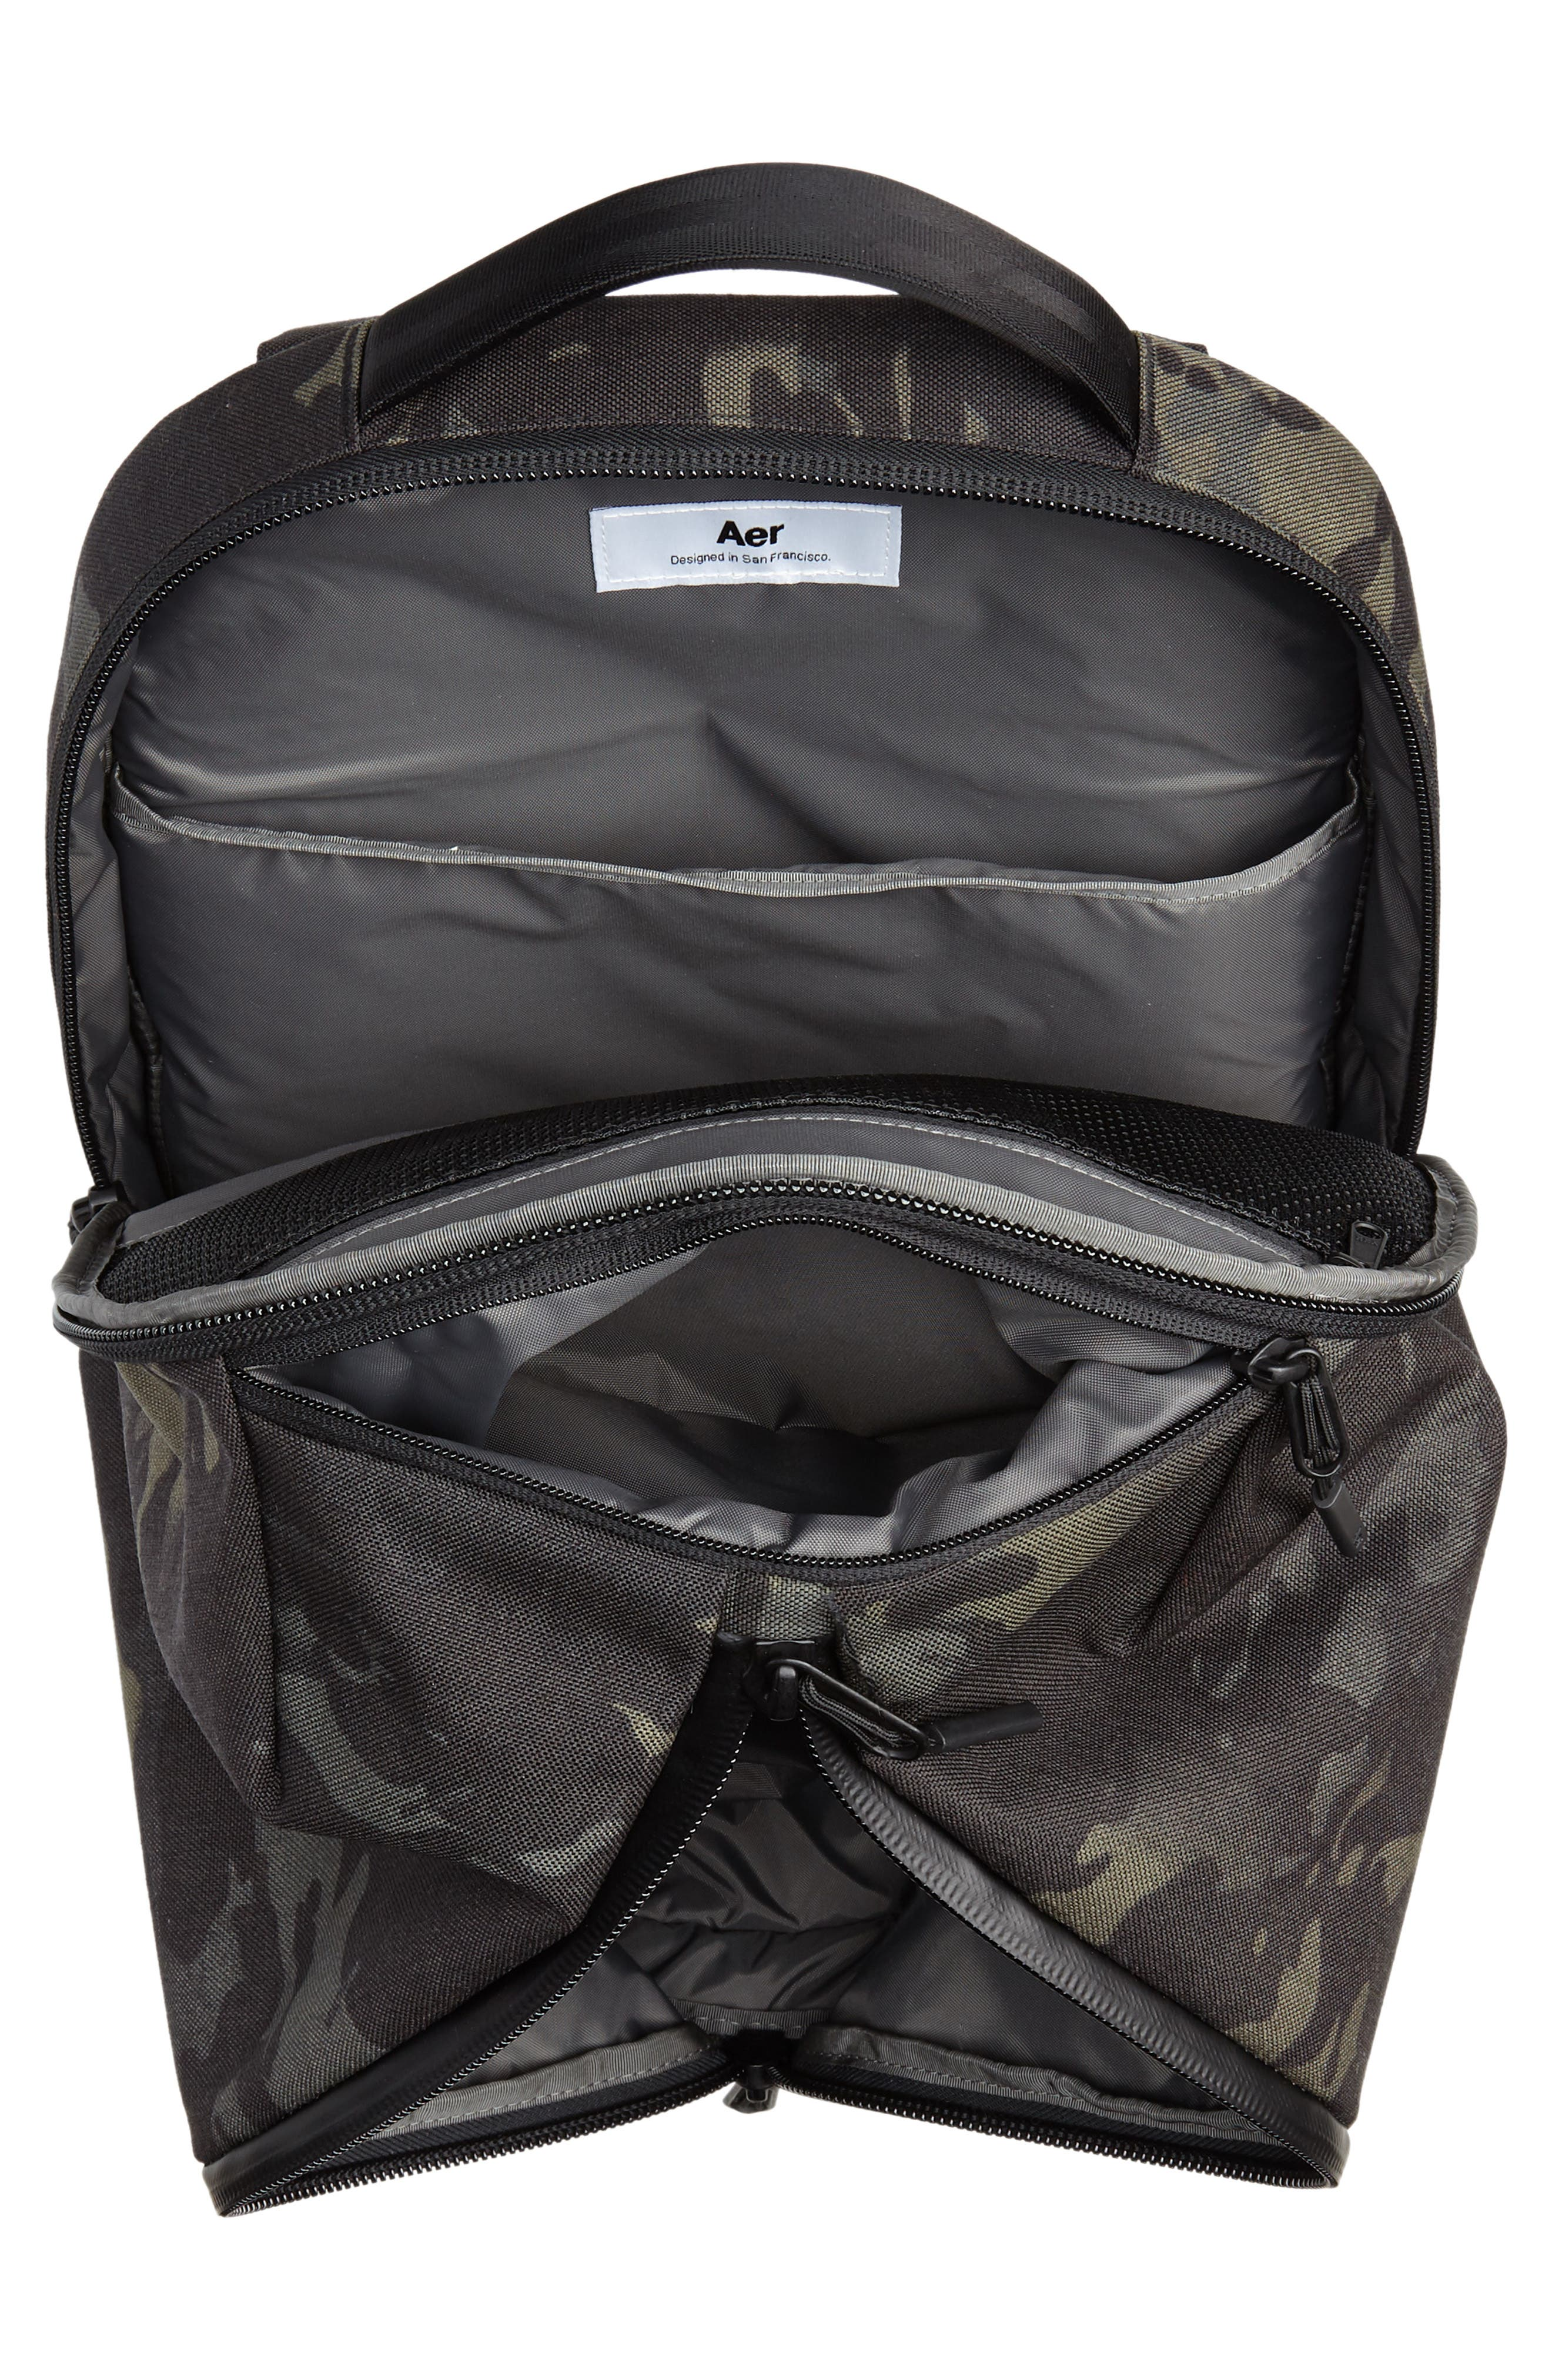 Fit Pack 2 Backpack,                             Alternate thumbnail 4, color,                             BLACK CAMO